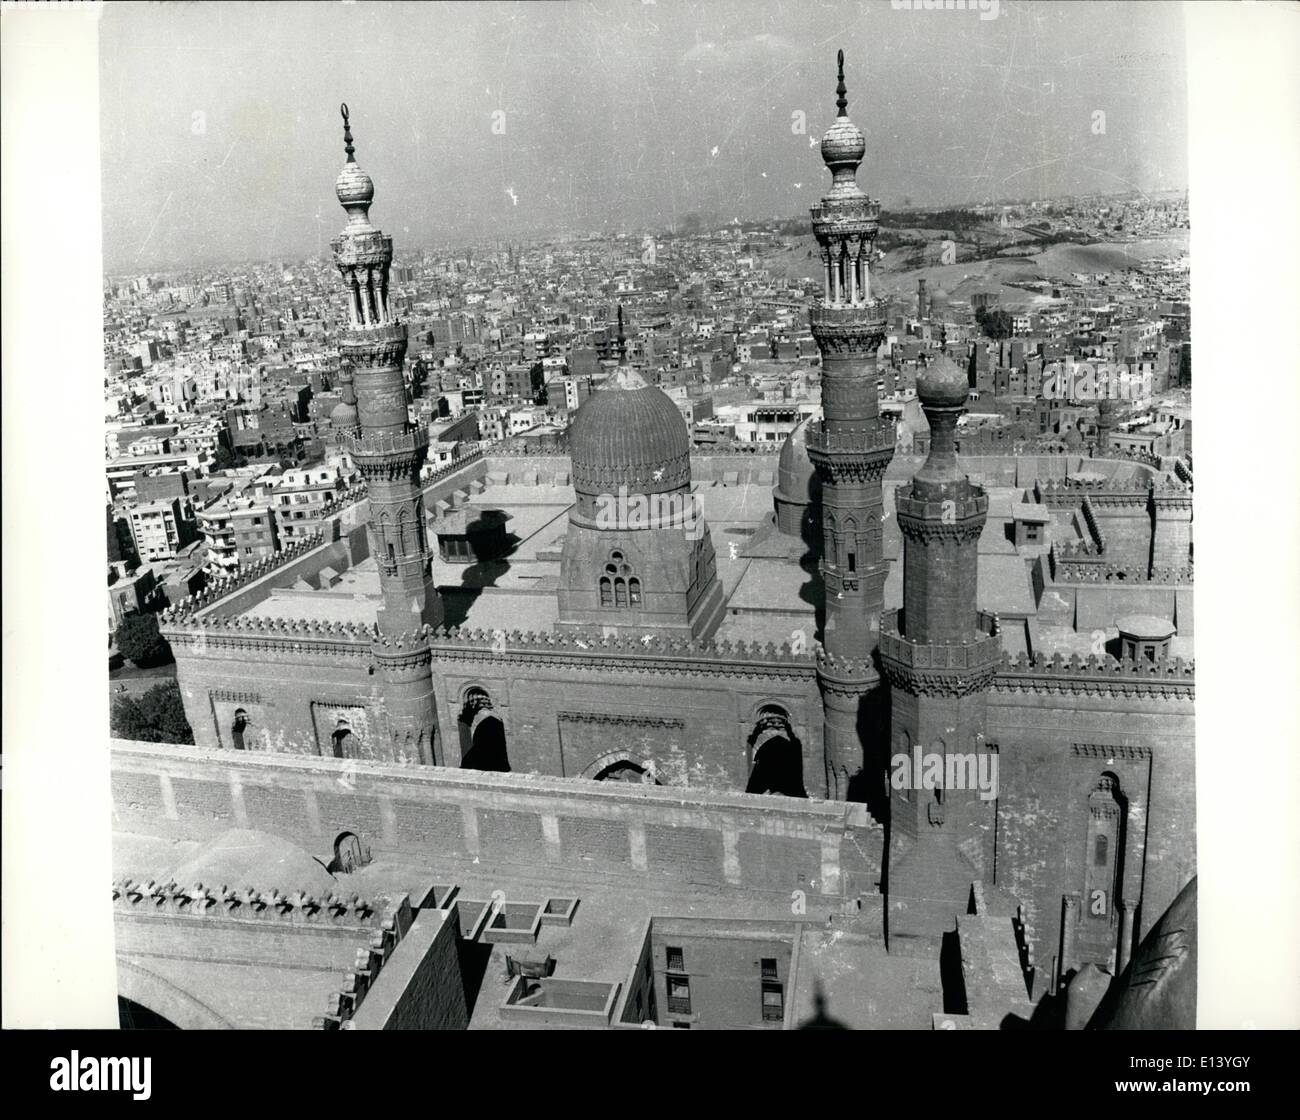 Mar. 27, 2012 - Al-Azhar University, Cairo The Resplendent - stronghold of Islam - lies in the heat of Cairo. It is surrounded by the old popular quarters of the city. - Stock Image